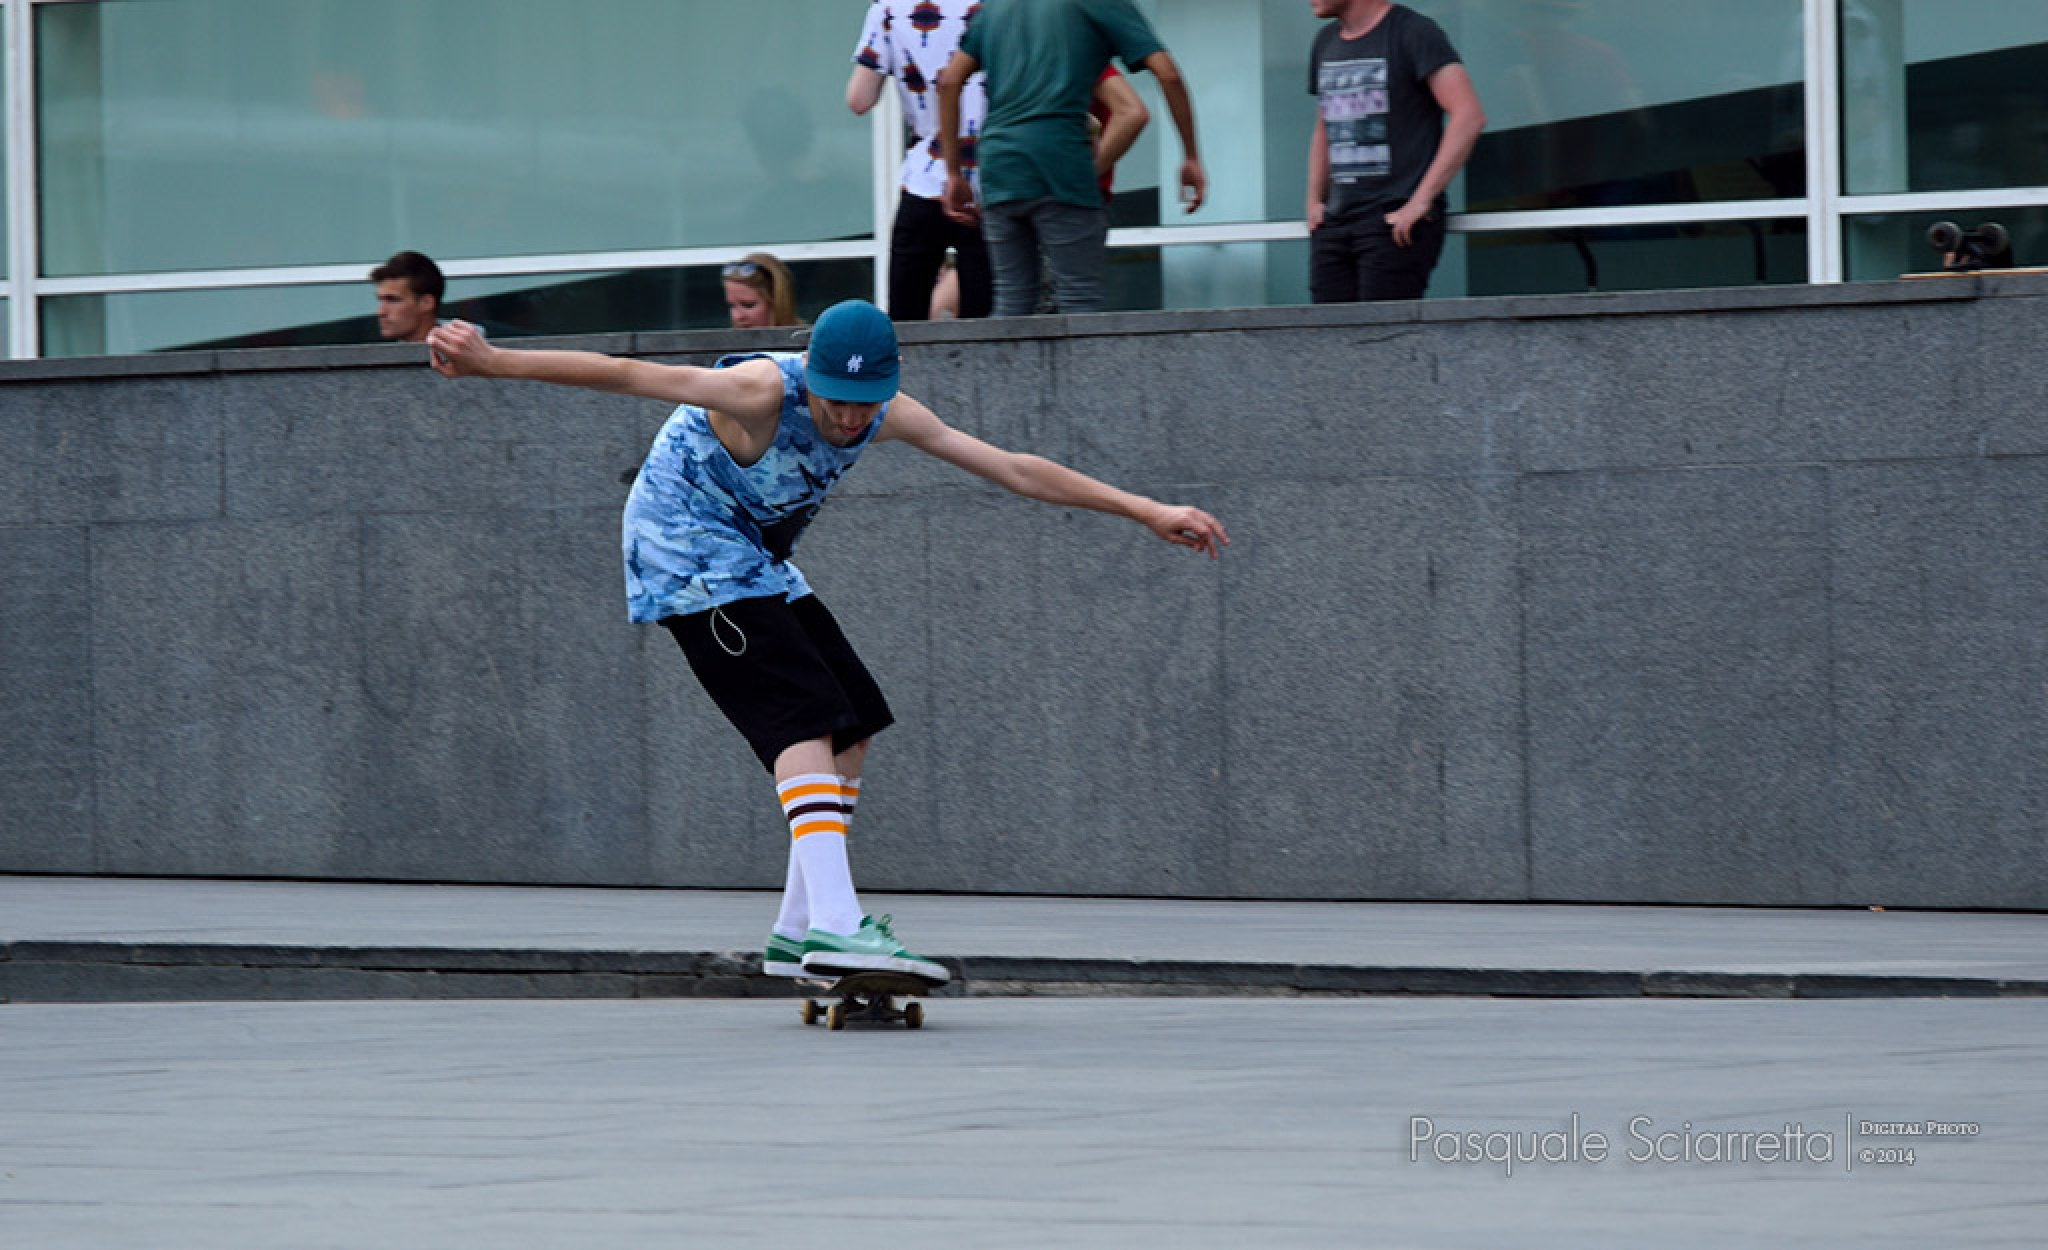 skaters by pasquale s.